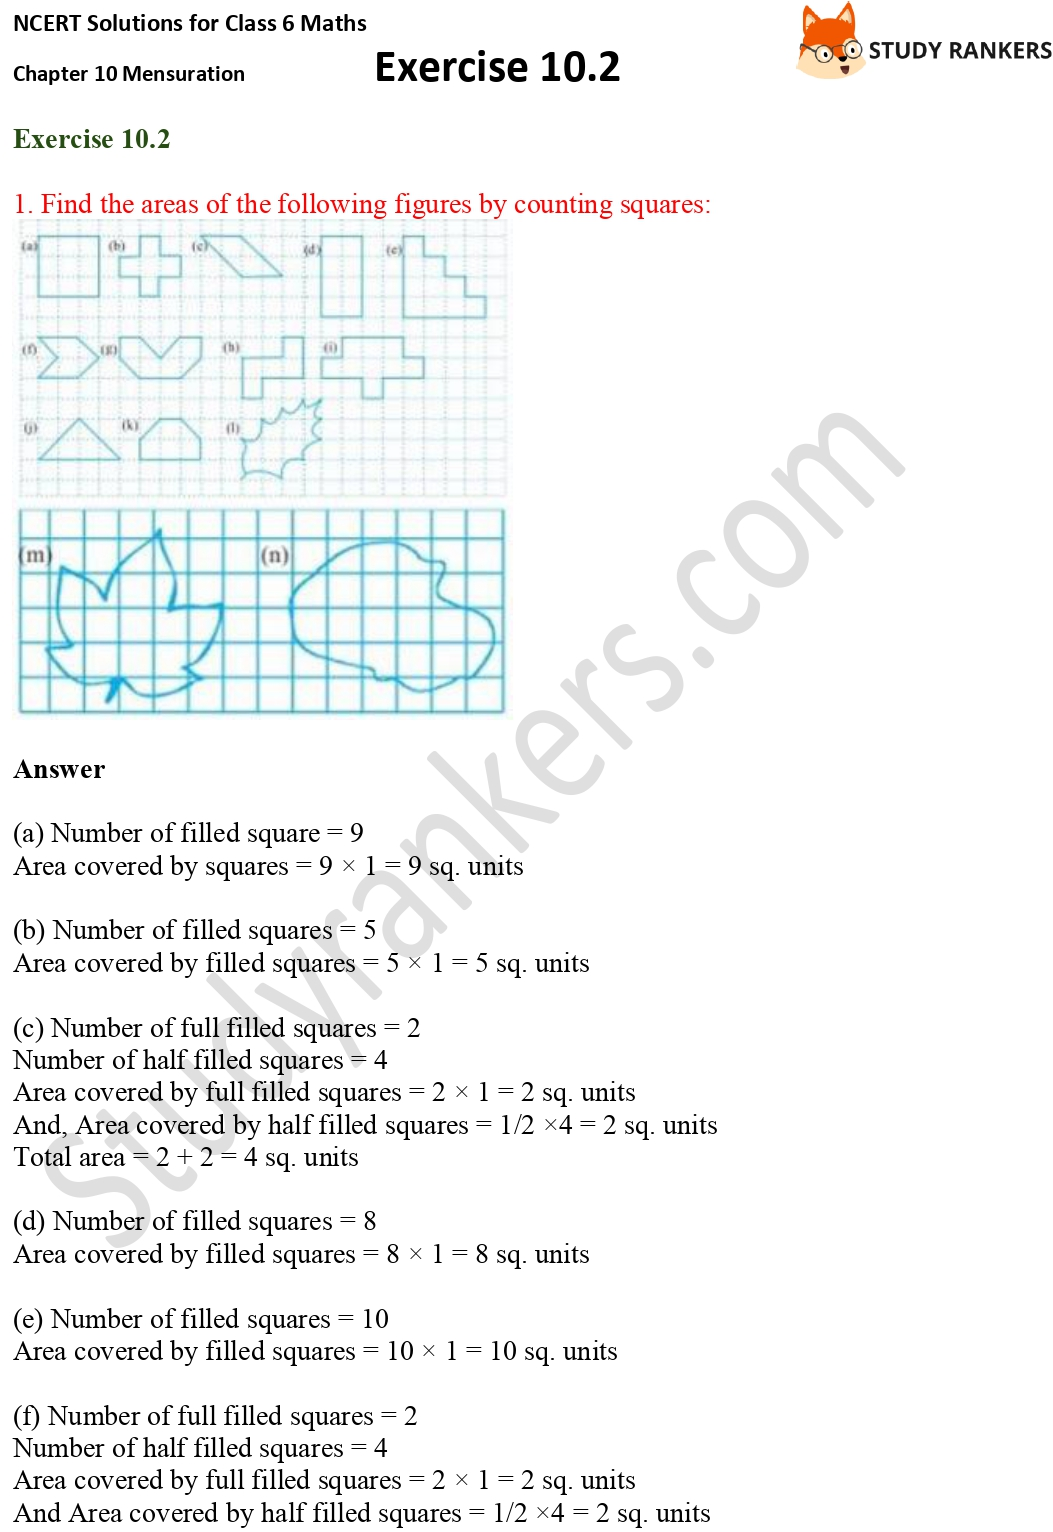 NCERT Solutions for Class 6 Maths Chapter 10 Mensuration Exercise 10.2 Part 1